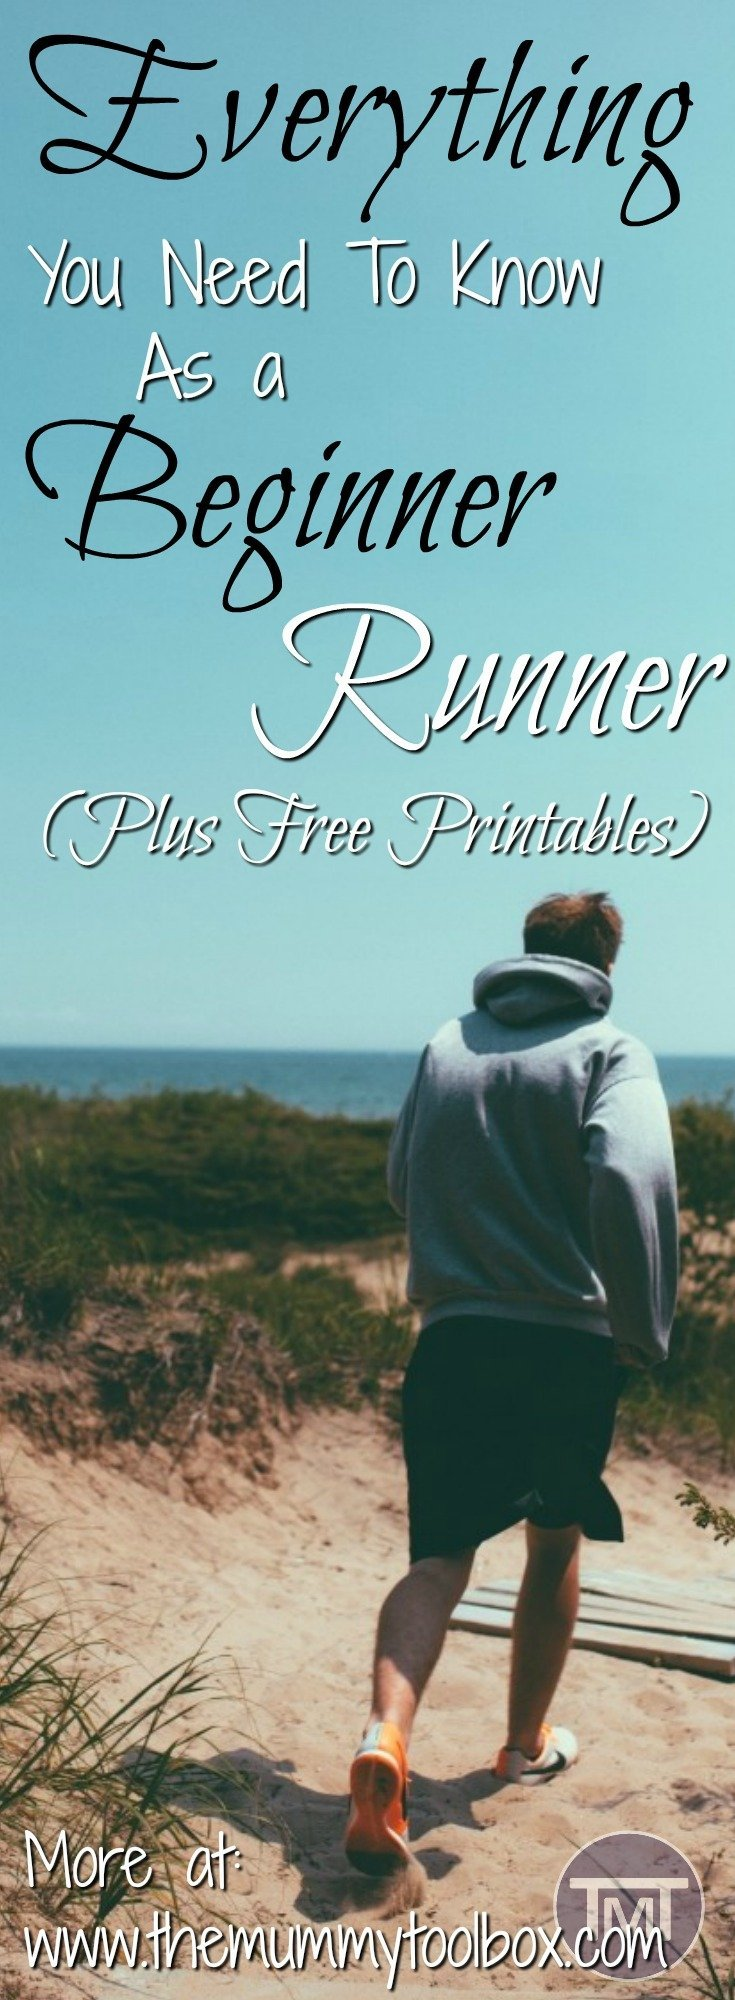 Training tips, equipment and how to use it, motivation, how to enjoy running, pro's and con's of music and everything else in between for a complete roundup of everything you need to know as a beginner runner. Plus there's some free printables too! #freeprintables #running #runners #runchat #run